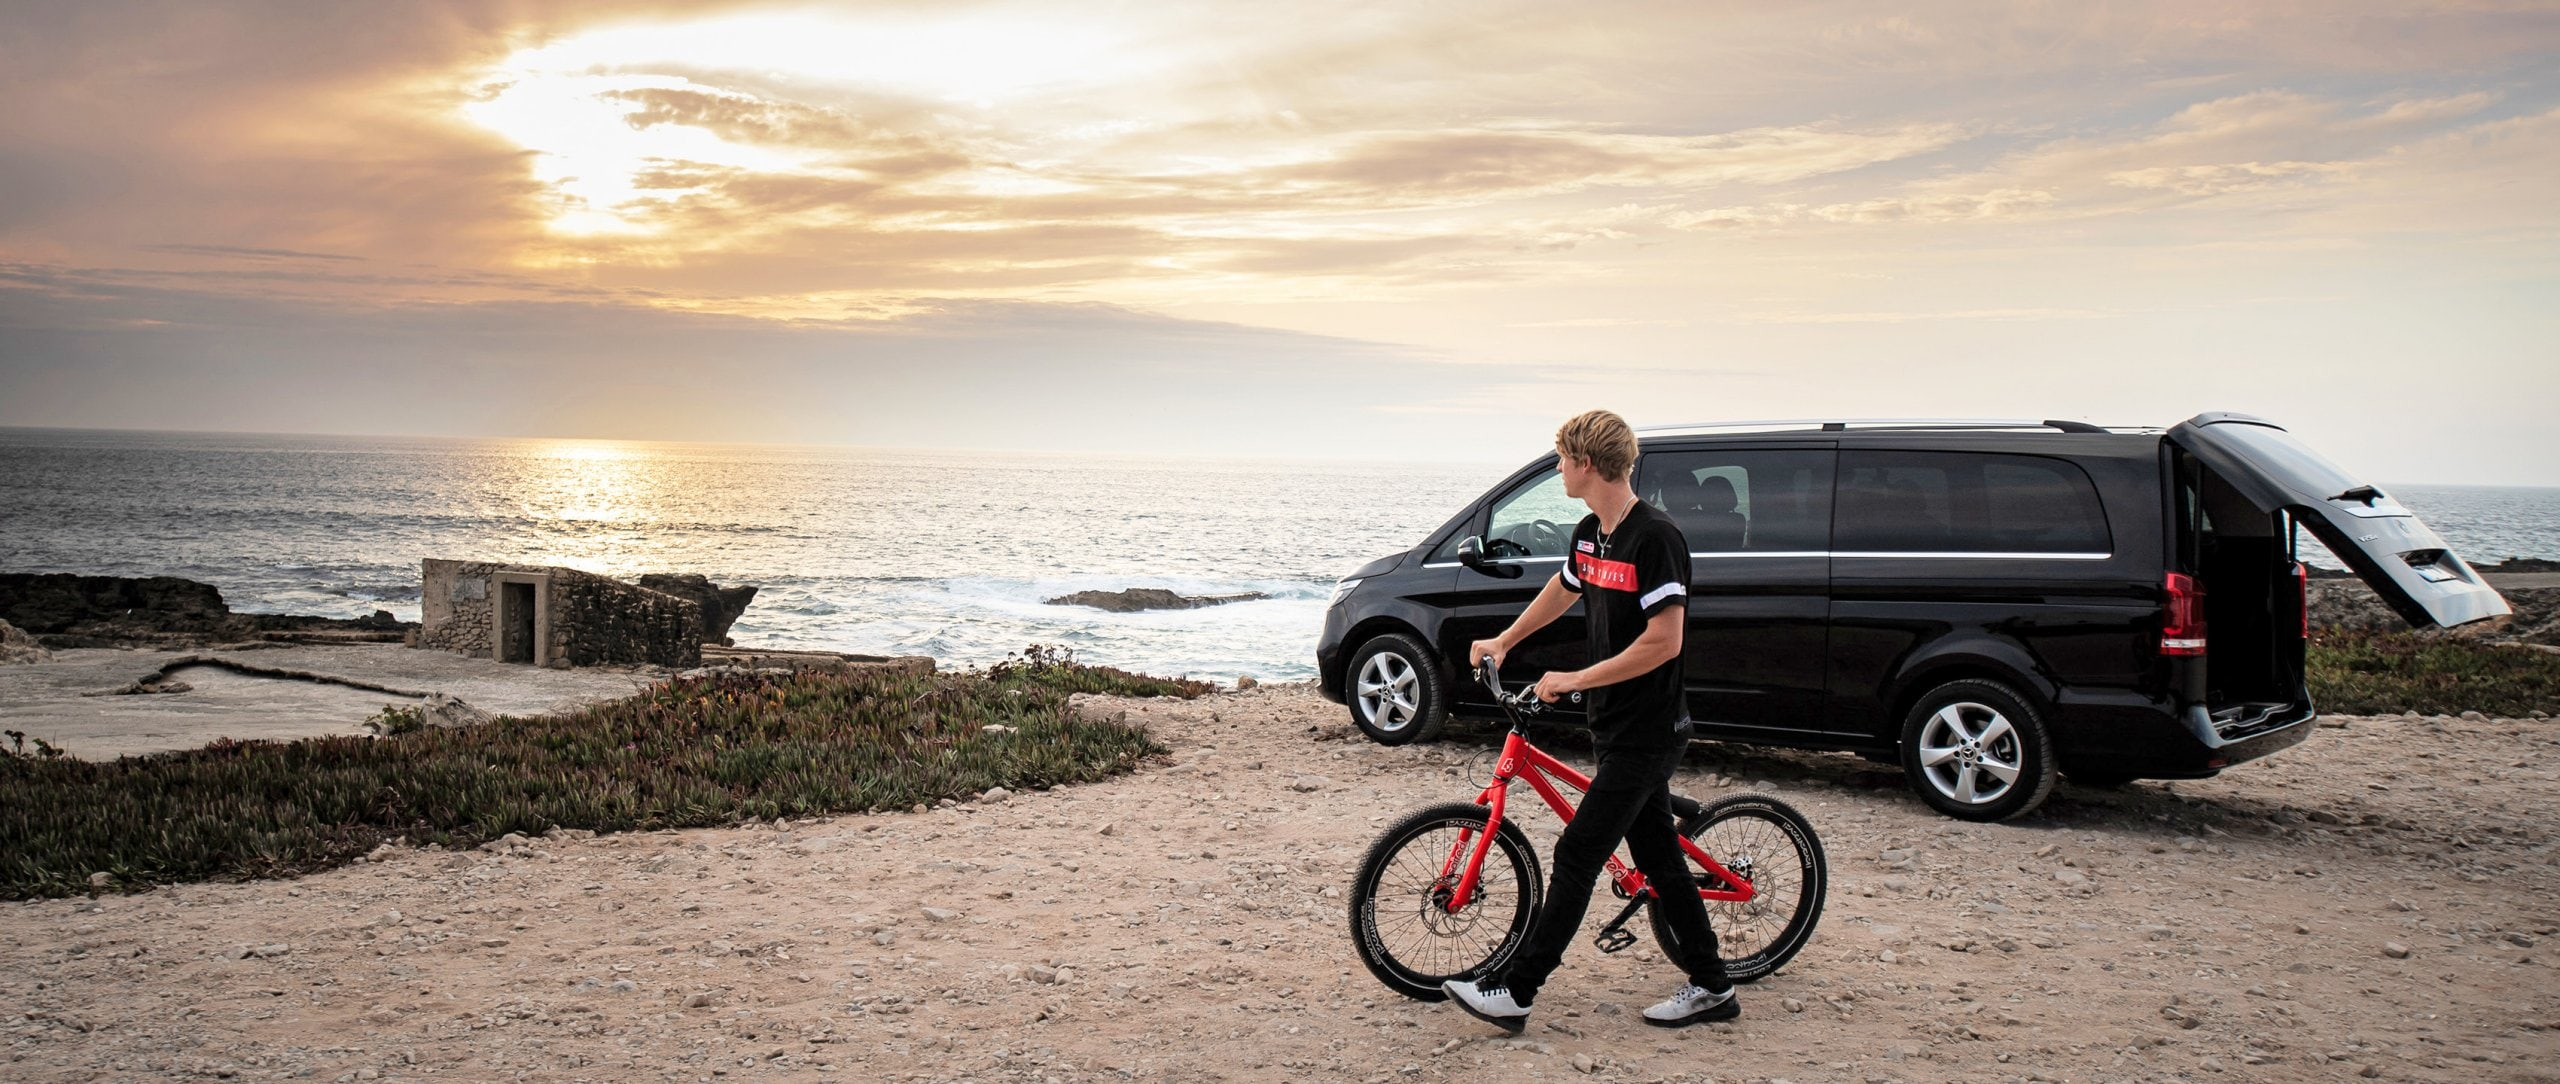 A biker cycling next to a Mercedes-Benz V-Class in the background